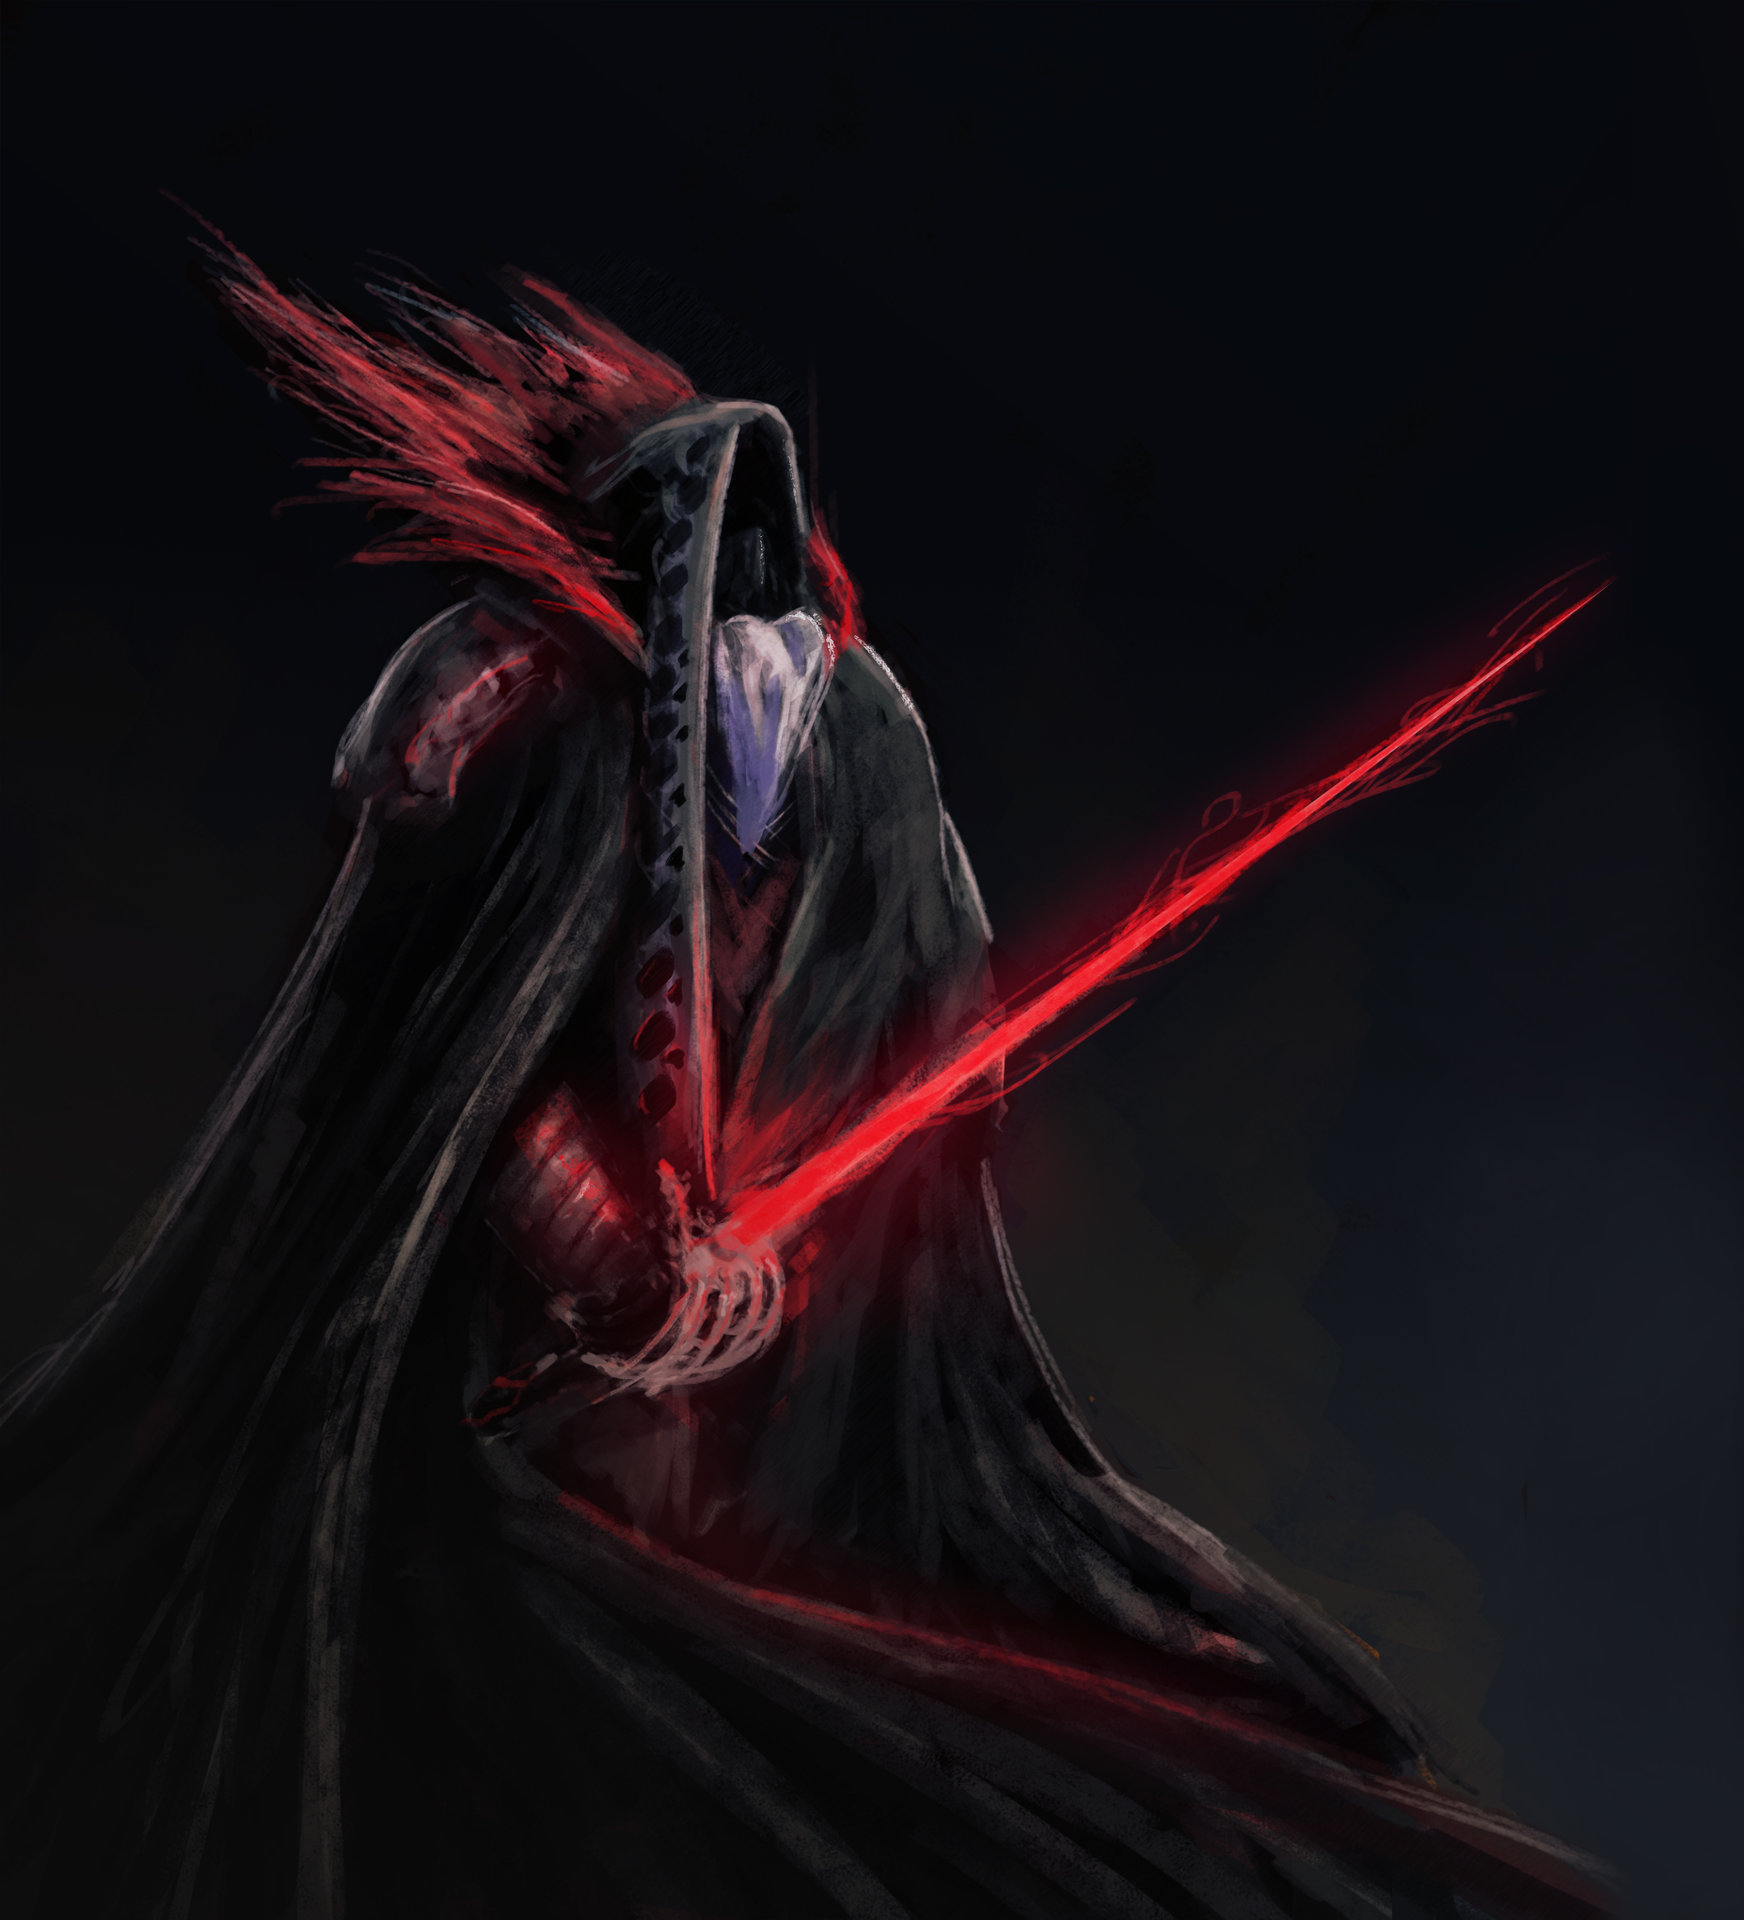 Konrad langa darth with rapier